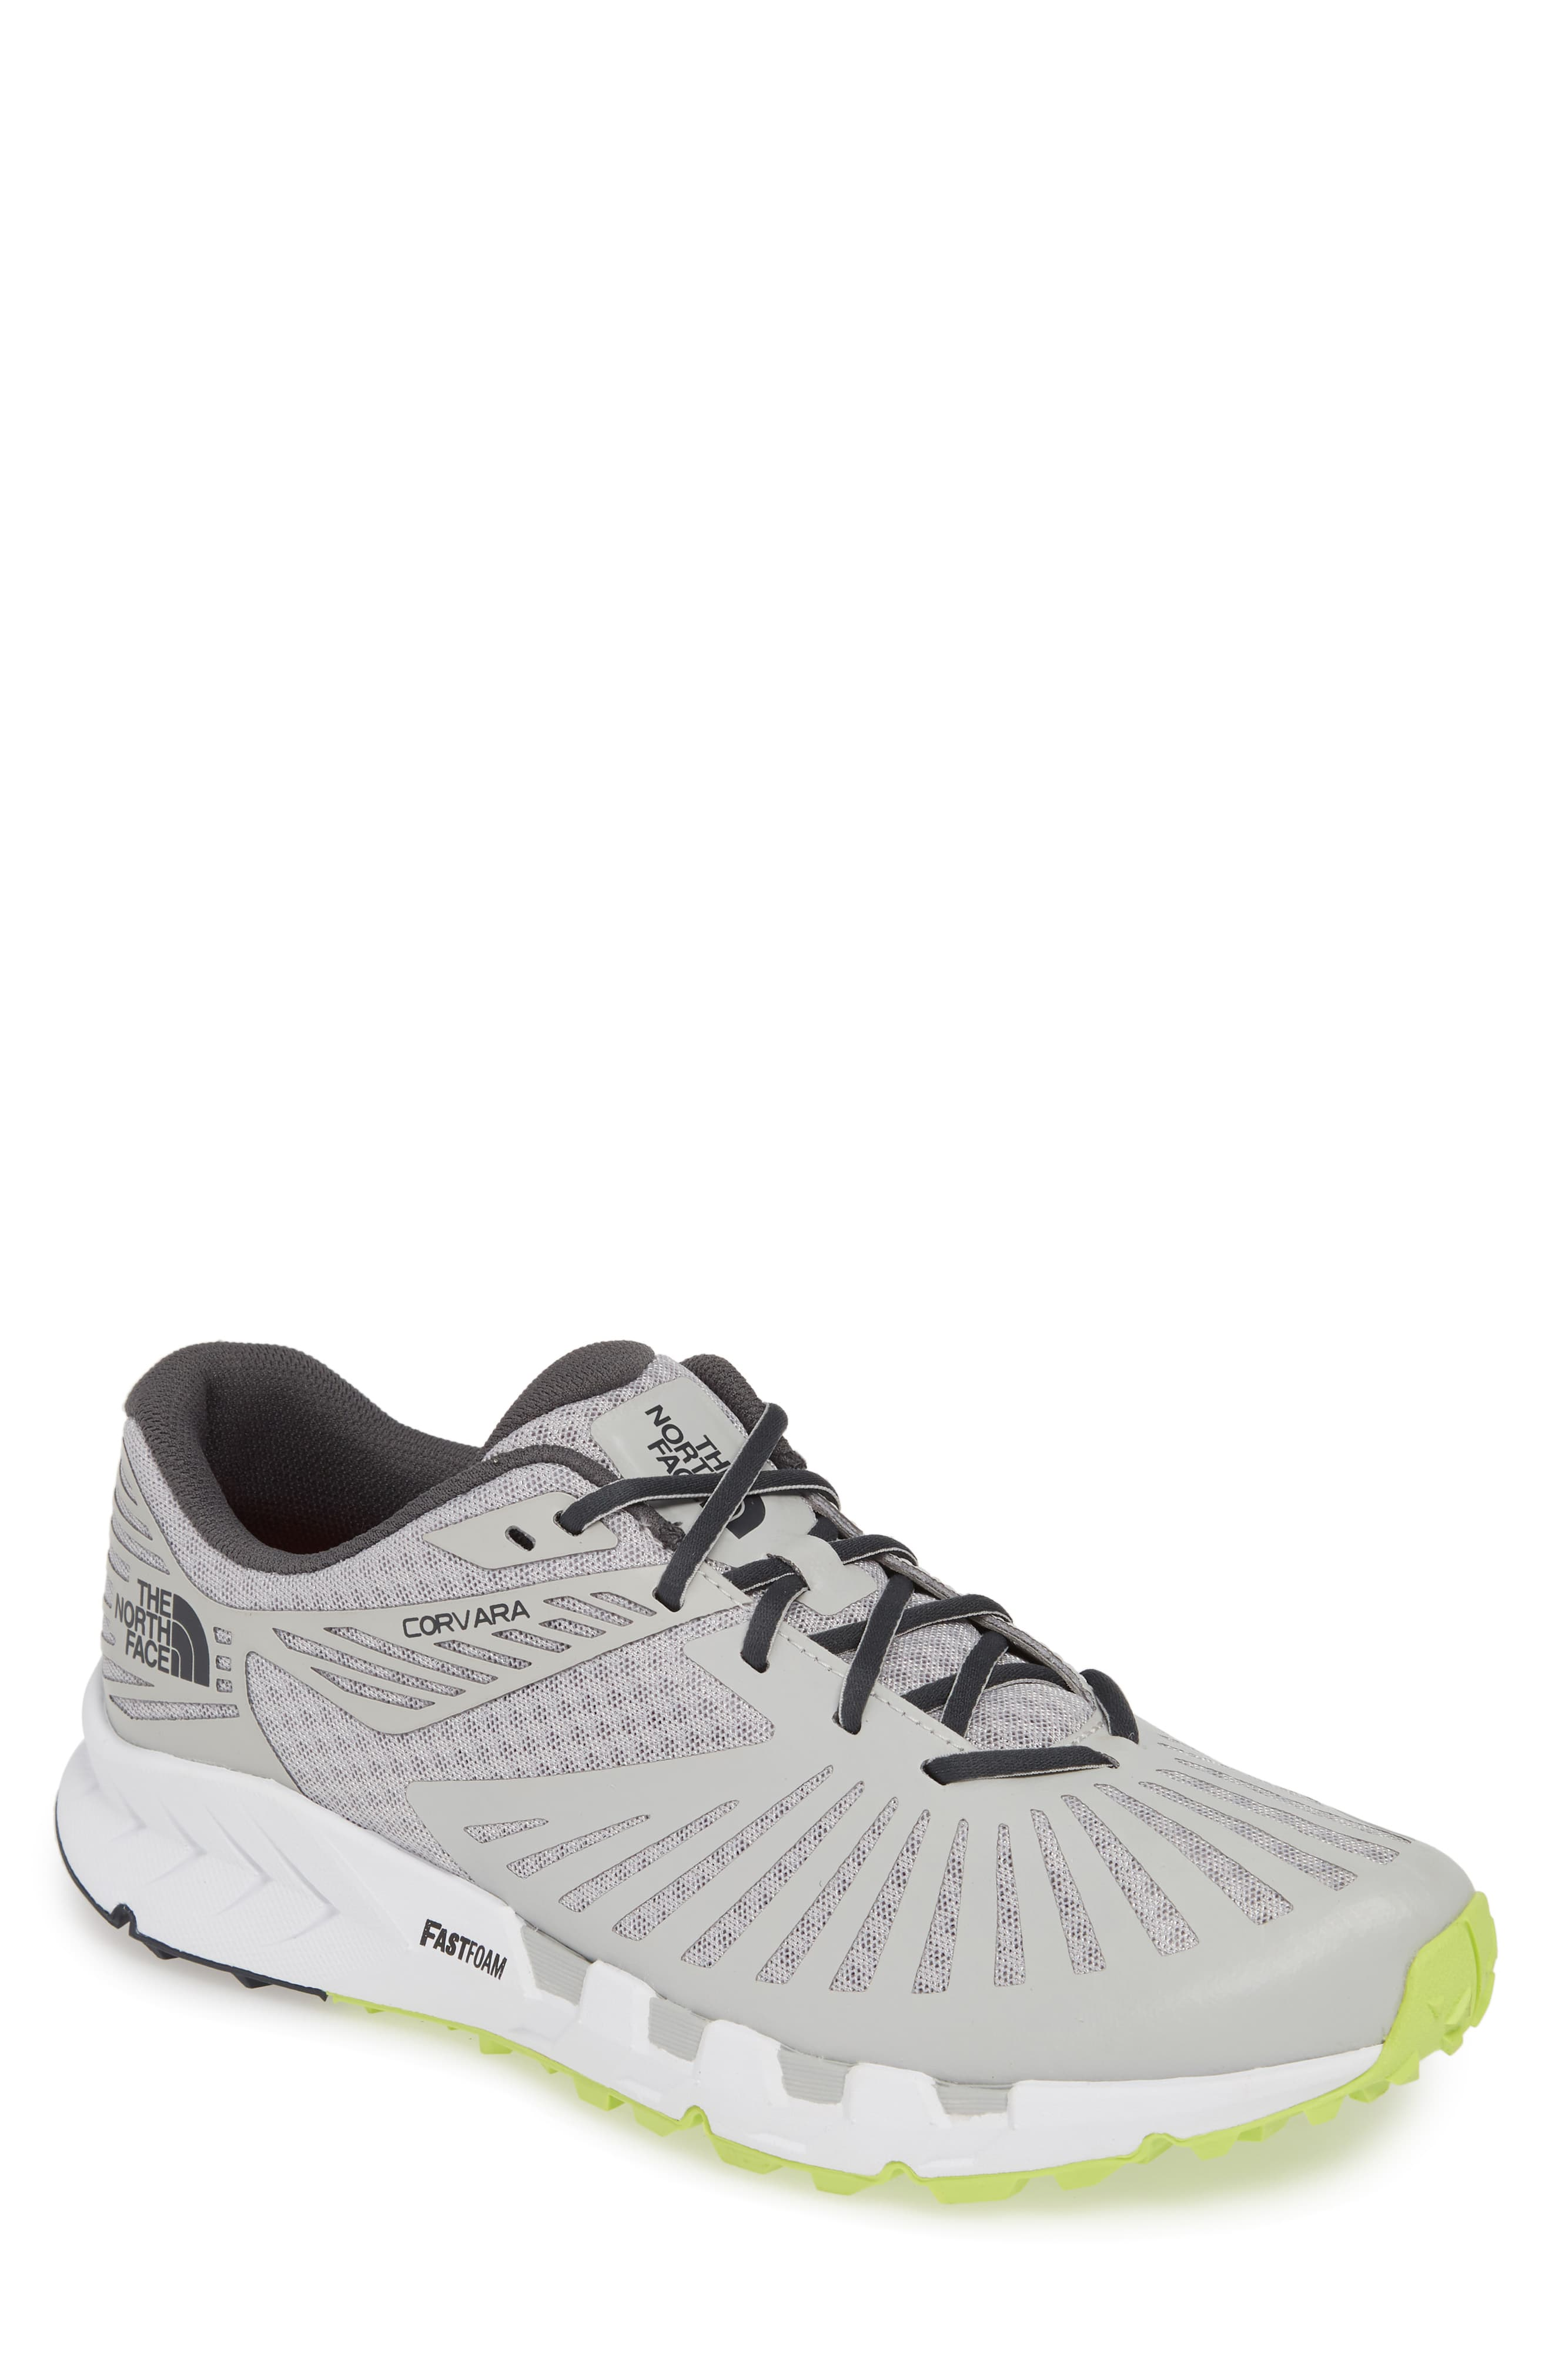 dbf48a854 Men's The North Face Corvara Trail Running Sneaker, Size 10.5 M ...